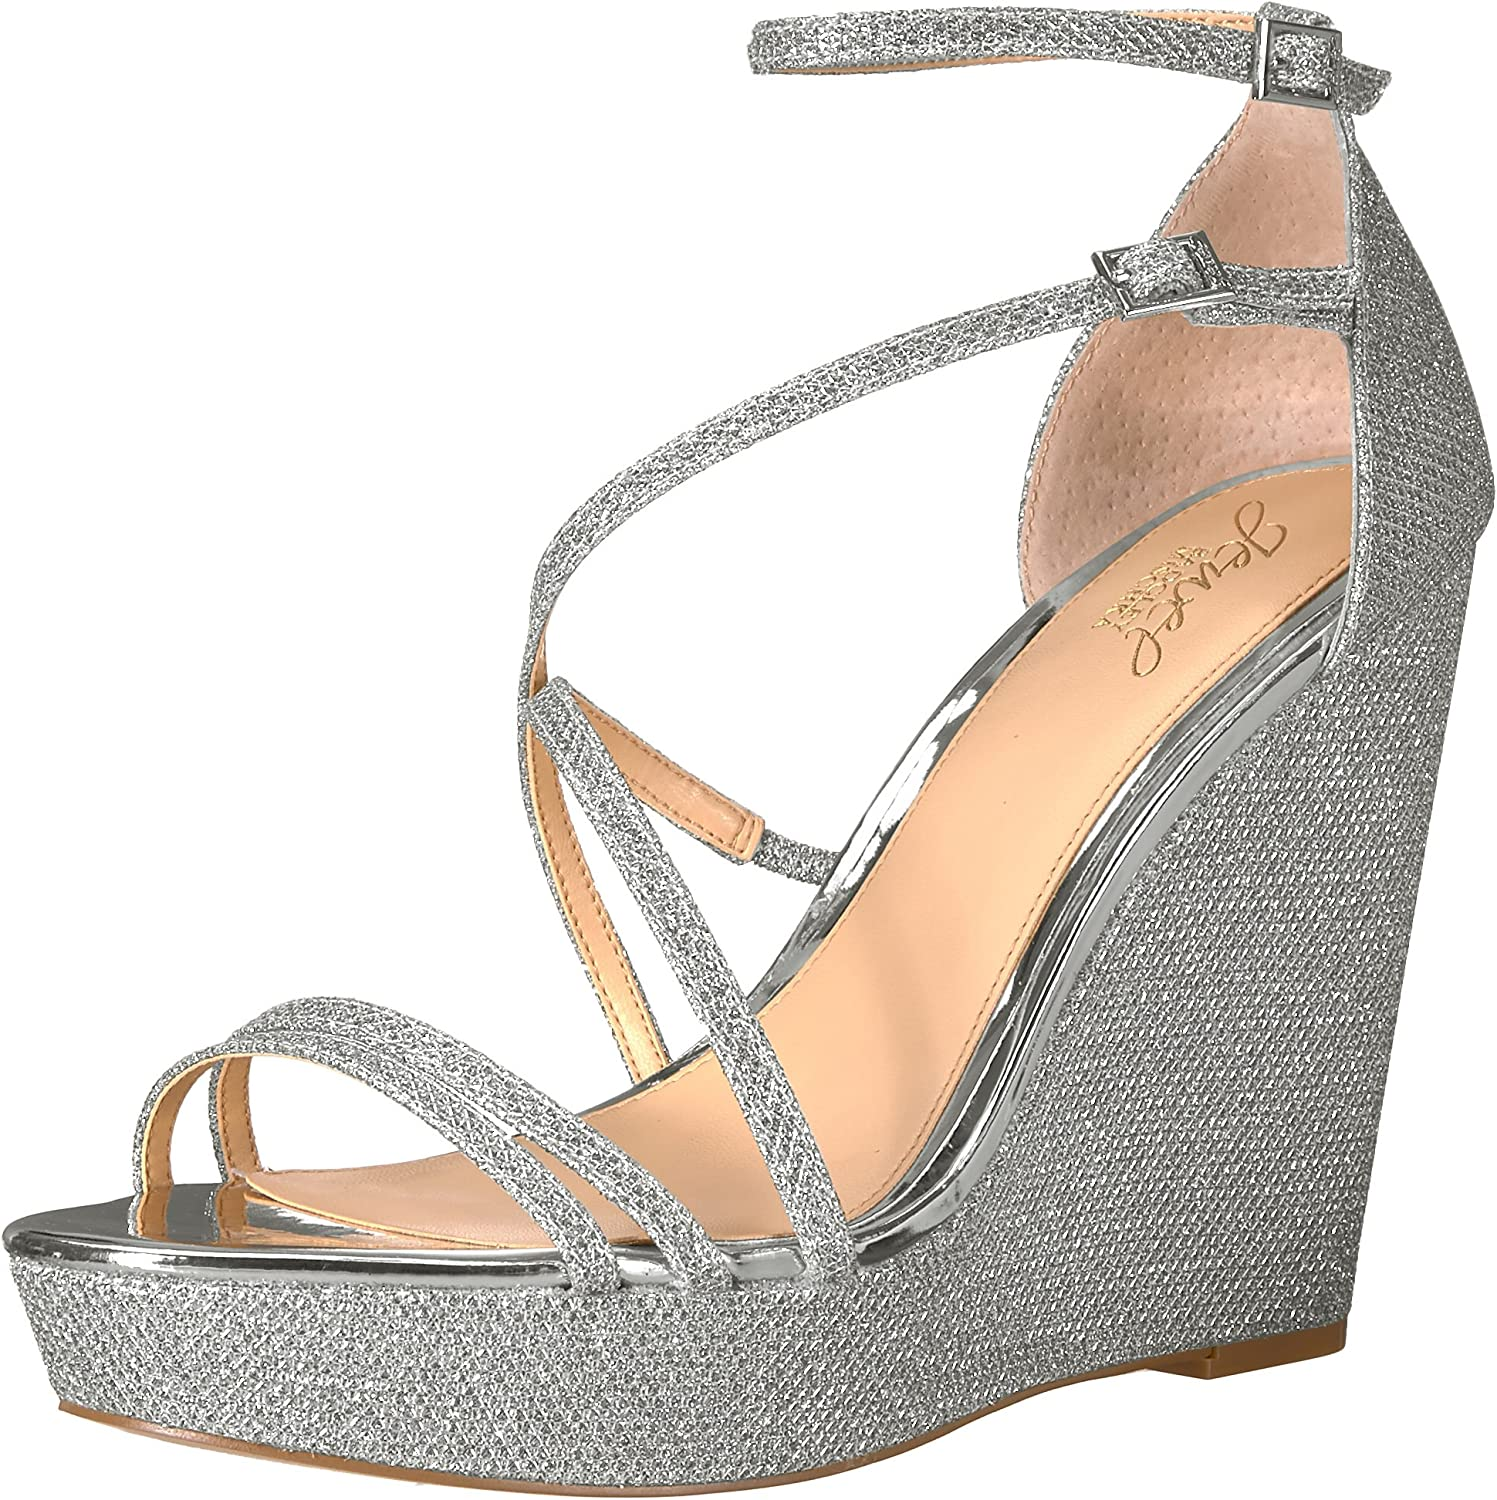 Badgley Mischka Mischka Jewel Woherren Tatsu Wedge Sandal, Silber, 8 Medium US  offizielle Website